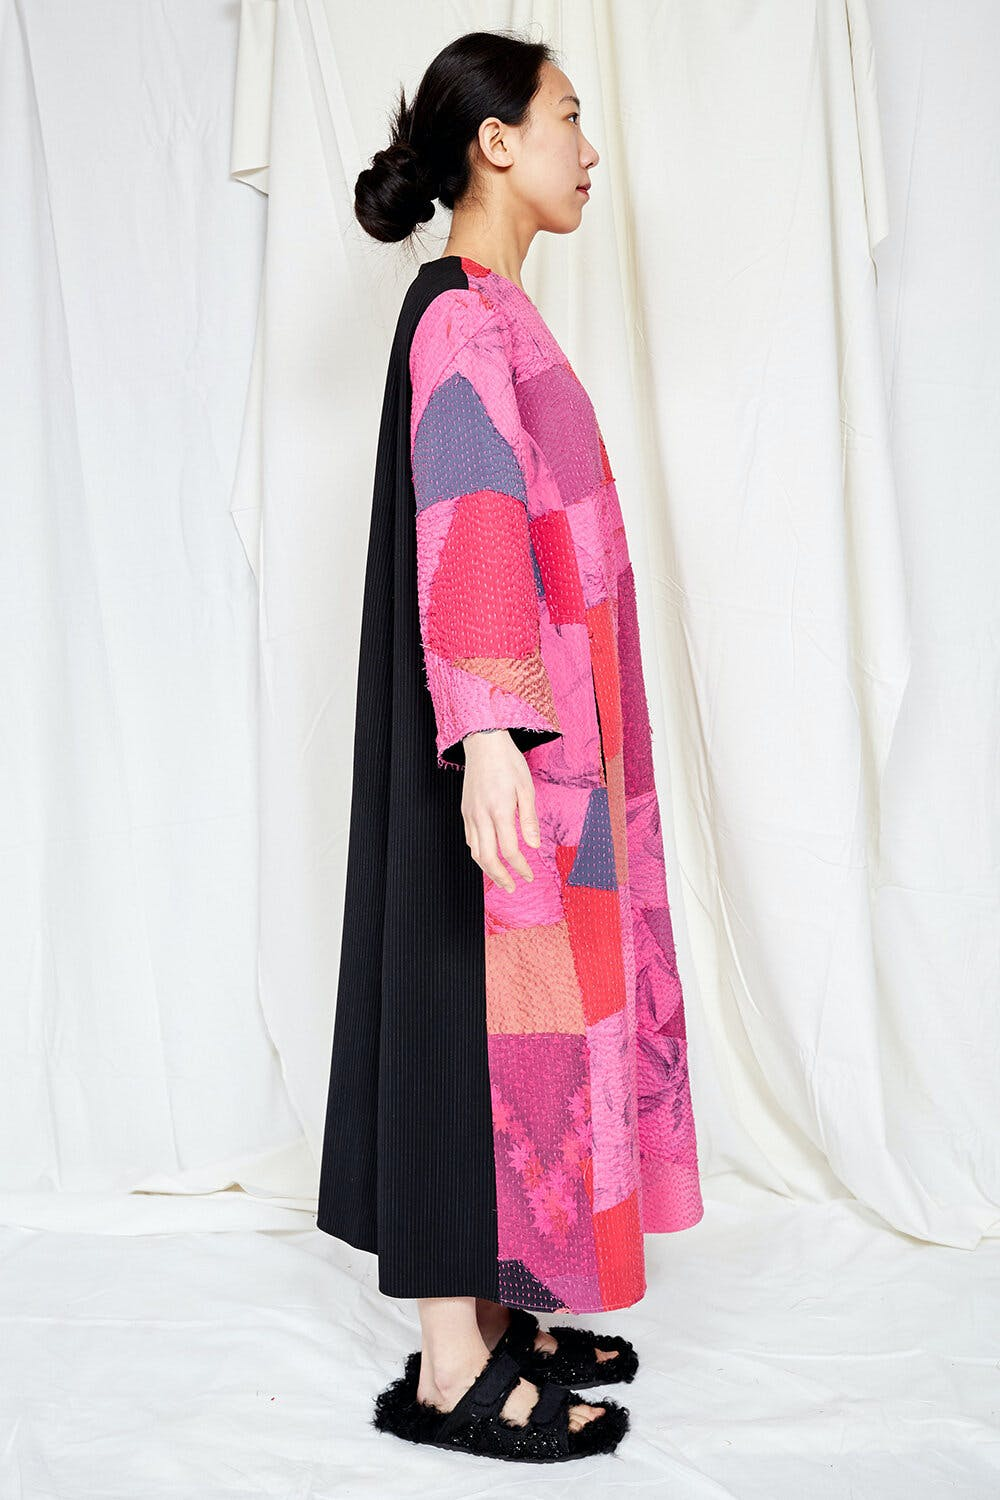 By Walid Womenswear Yasmine Front Patchwork Embroidered Coat in Pink AW20